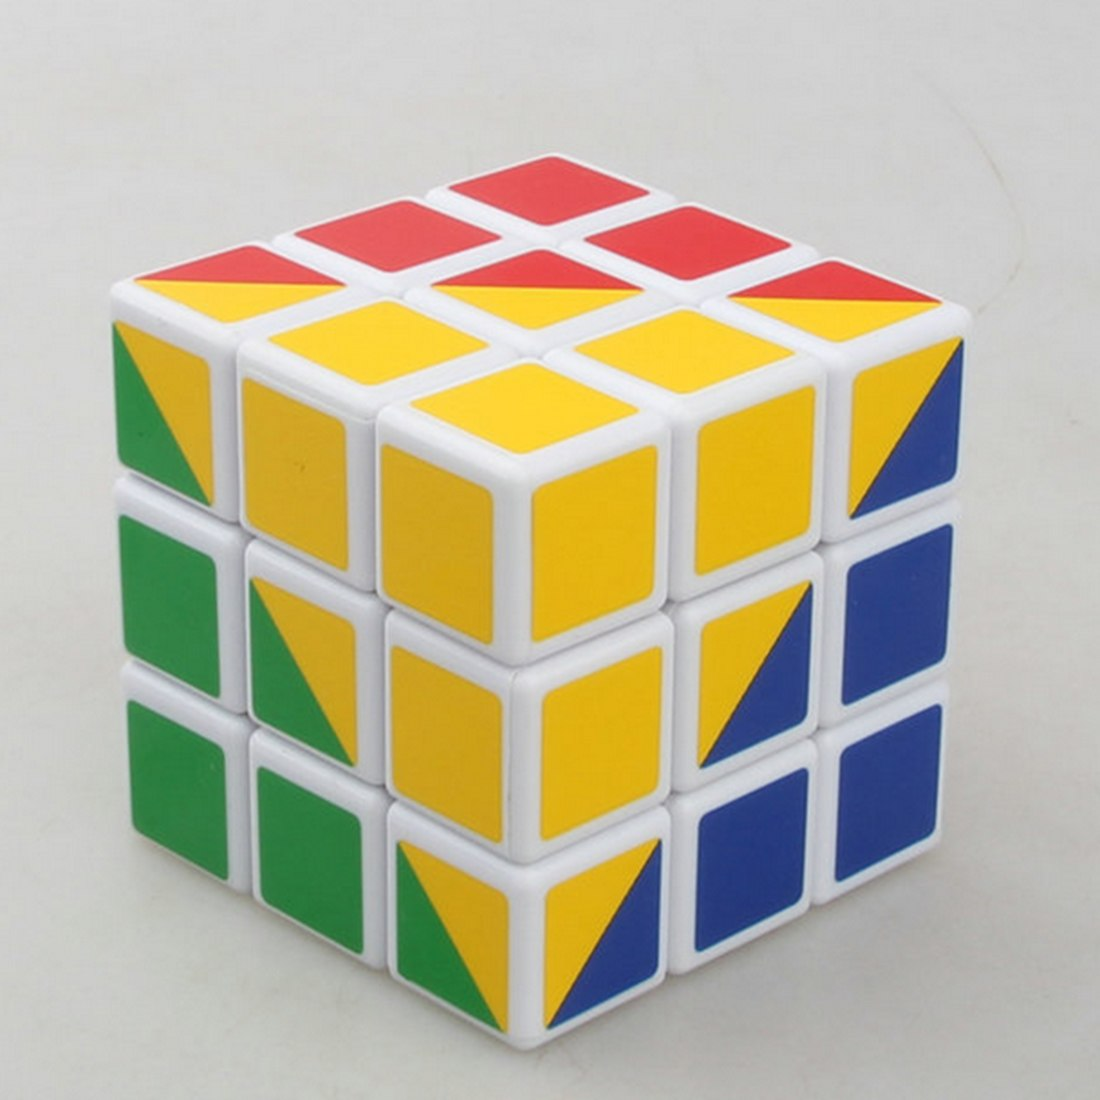 X-cube-Most-Difficult-3X3X3-56mm-Magic-Speed-Cube-Four-Colors-Magic-Cube (2)